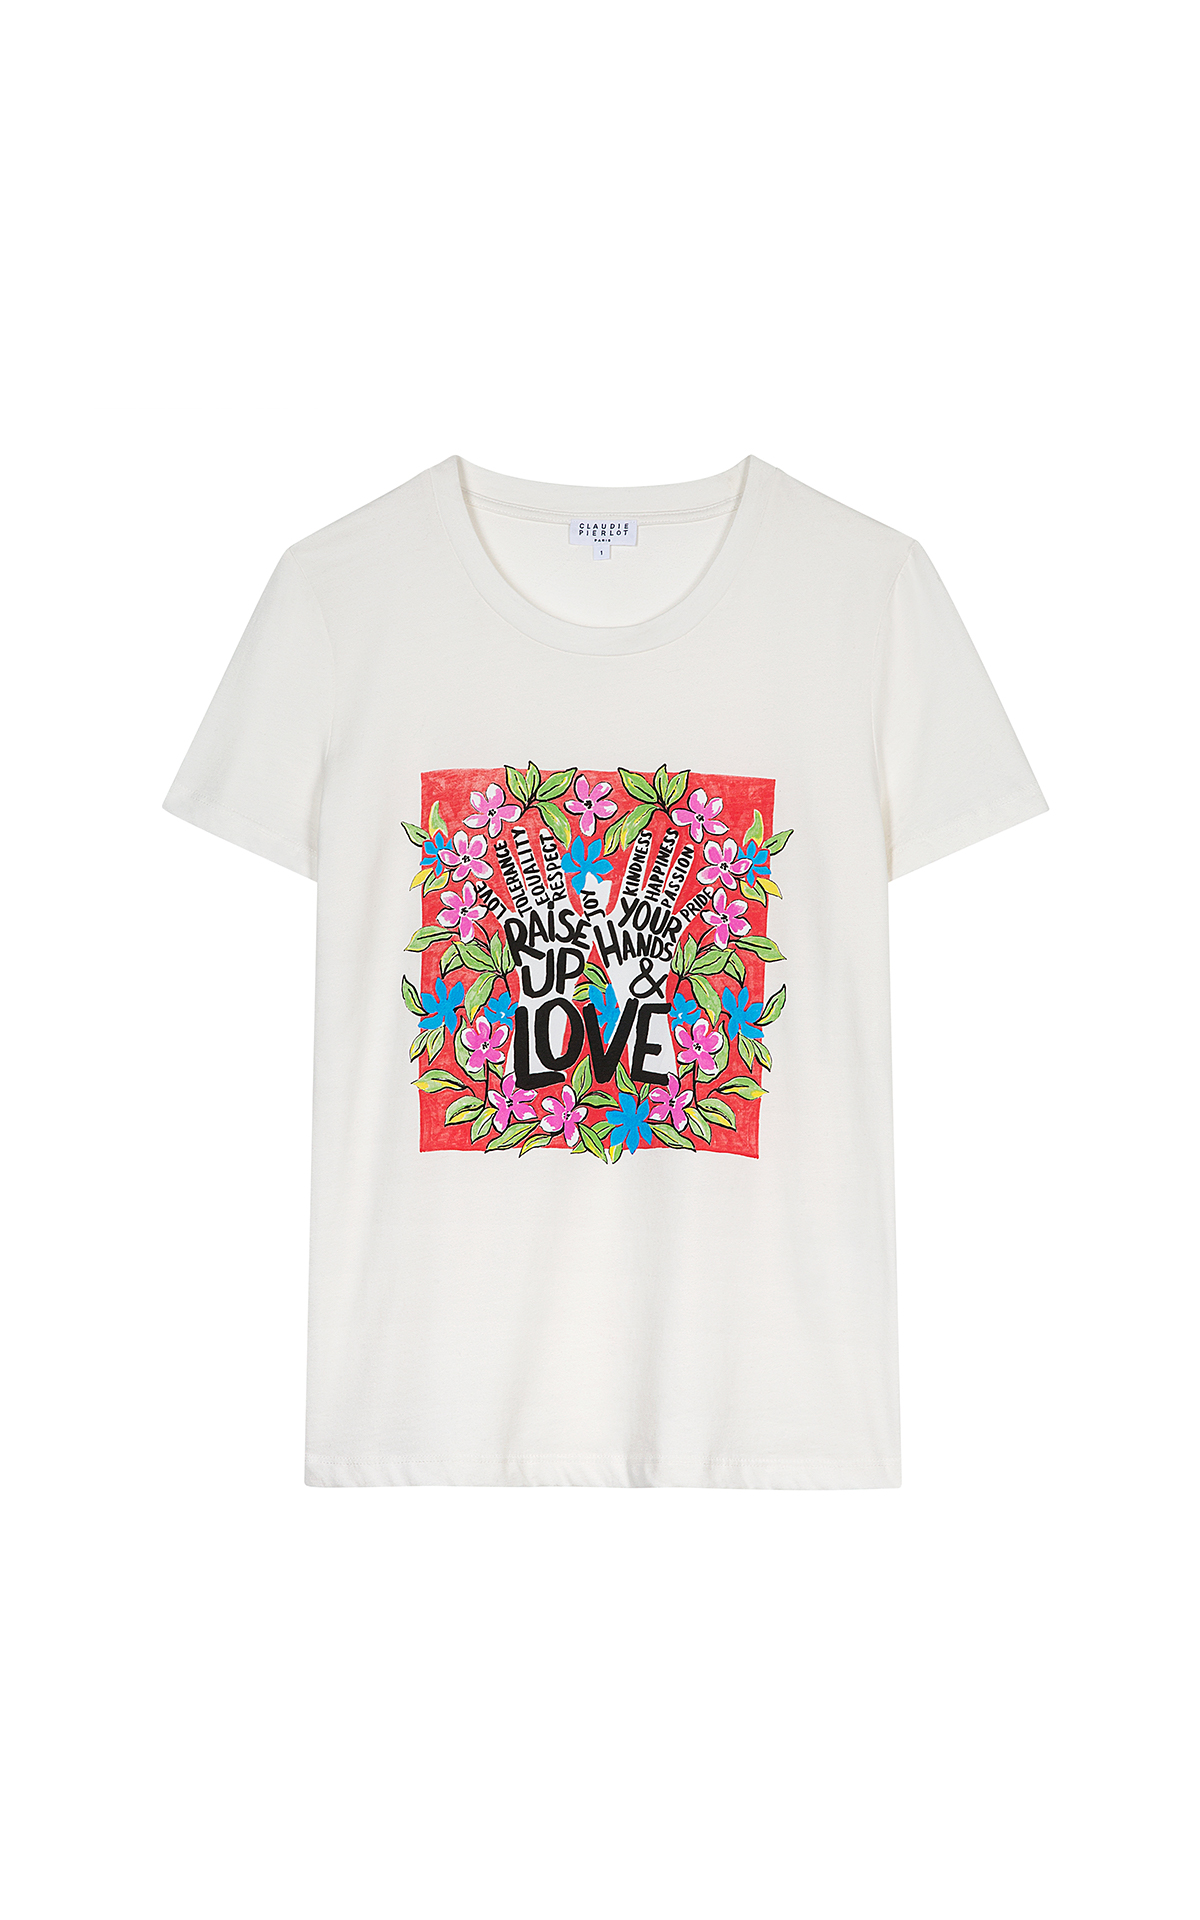 Claudie Pierlot To Believe Rise up t-shirt at The Bicester Village Shopping Collection